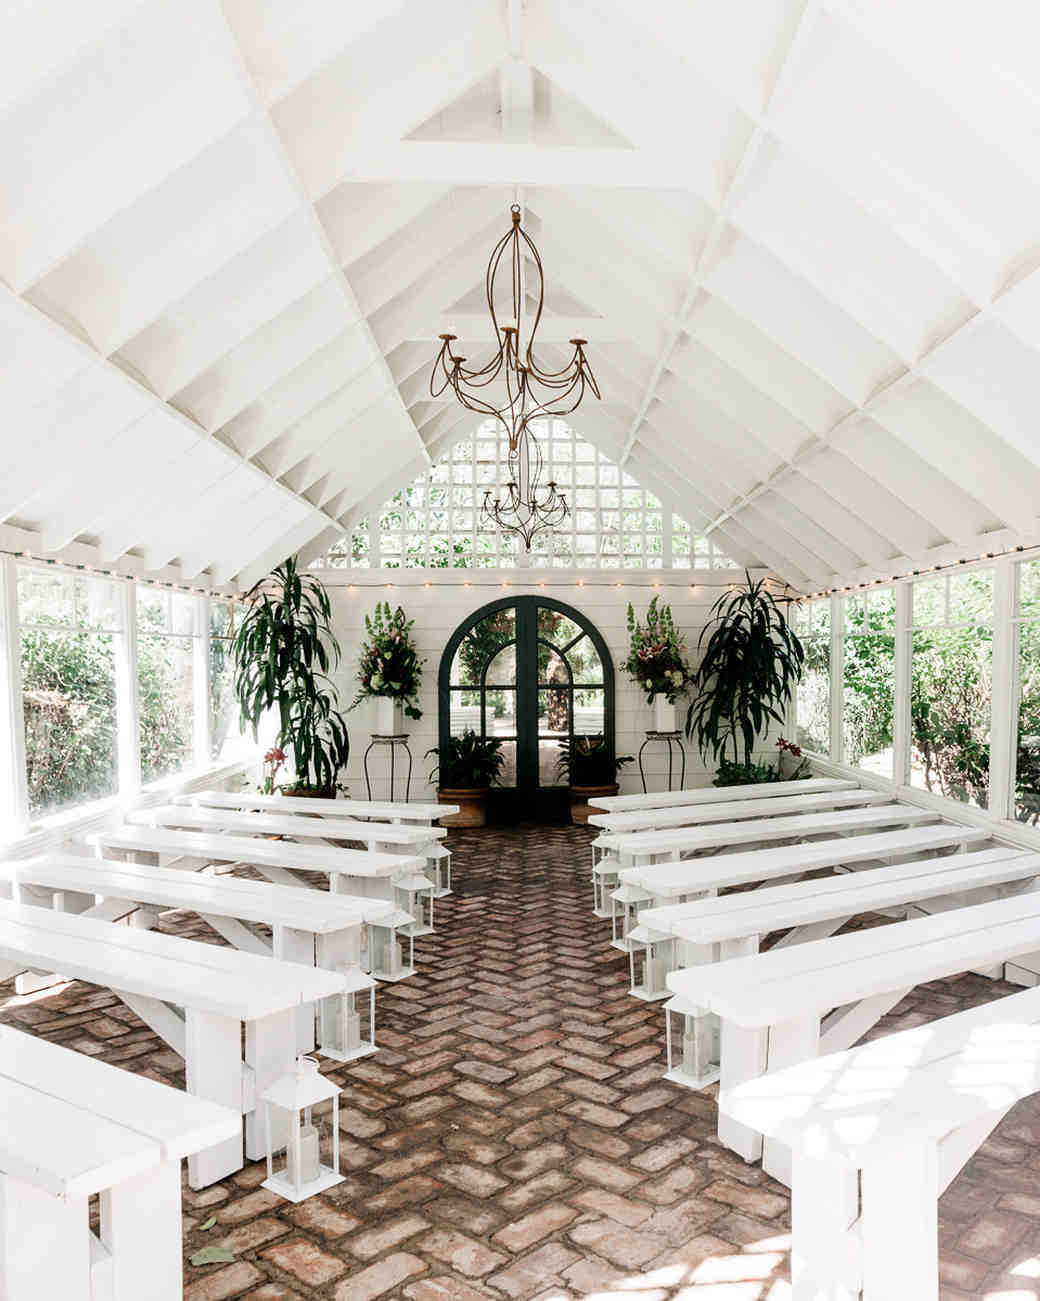 airbnb-wedding-venues-los-angeles-1218_vert.jpg